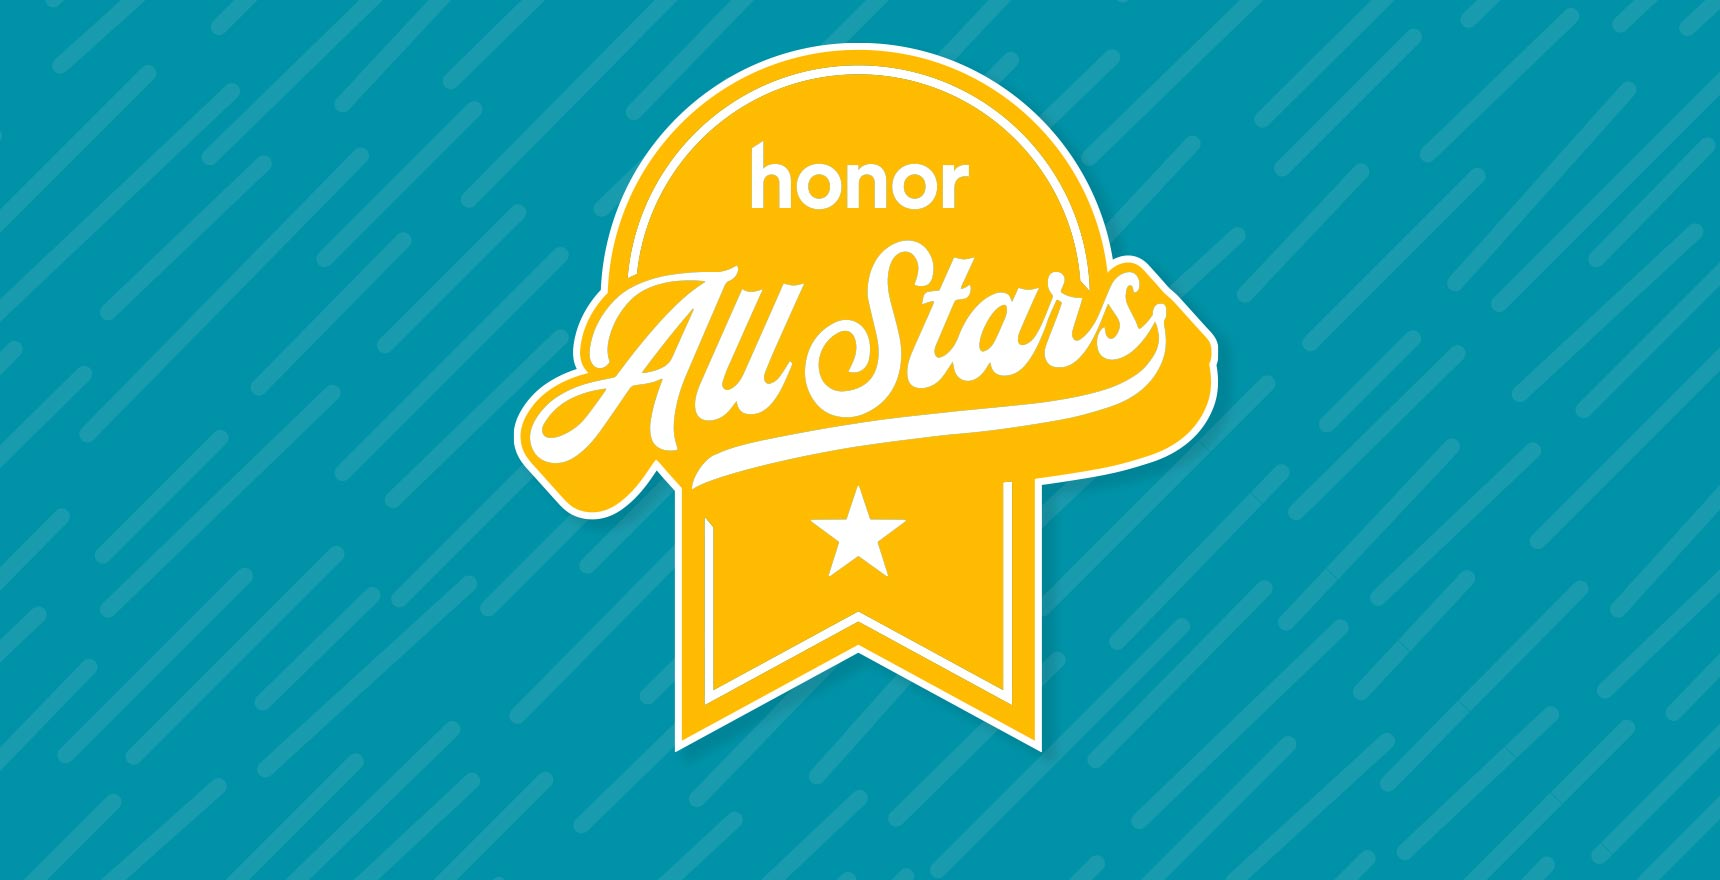 Meet the August 2021 Honor All-Stars